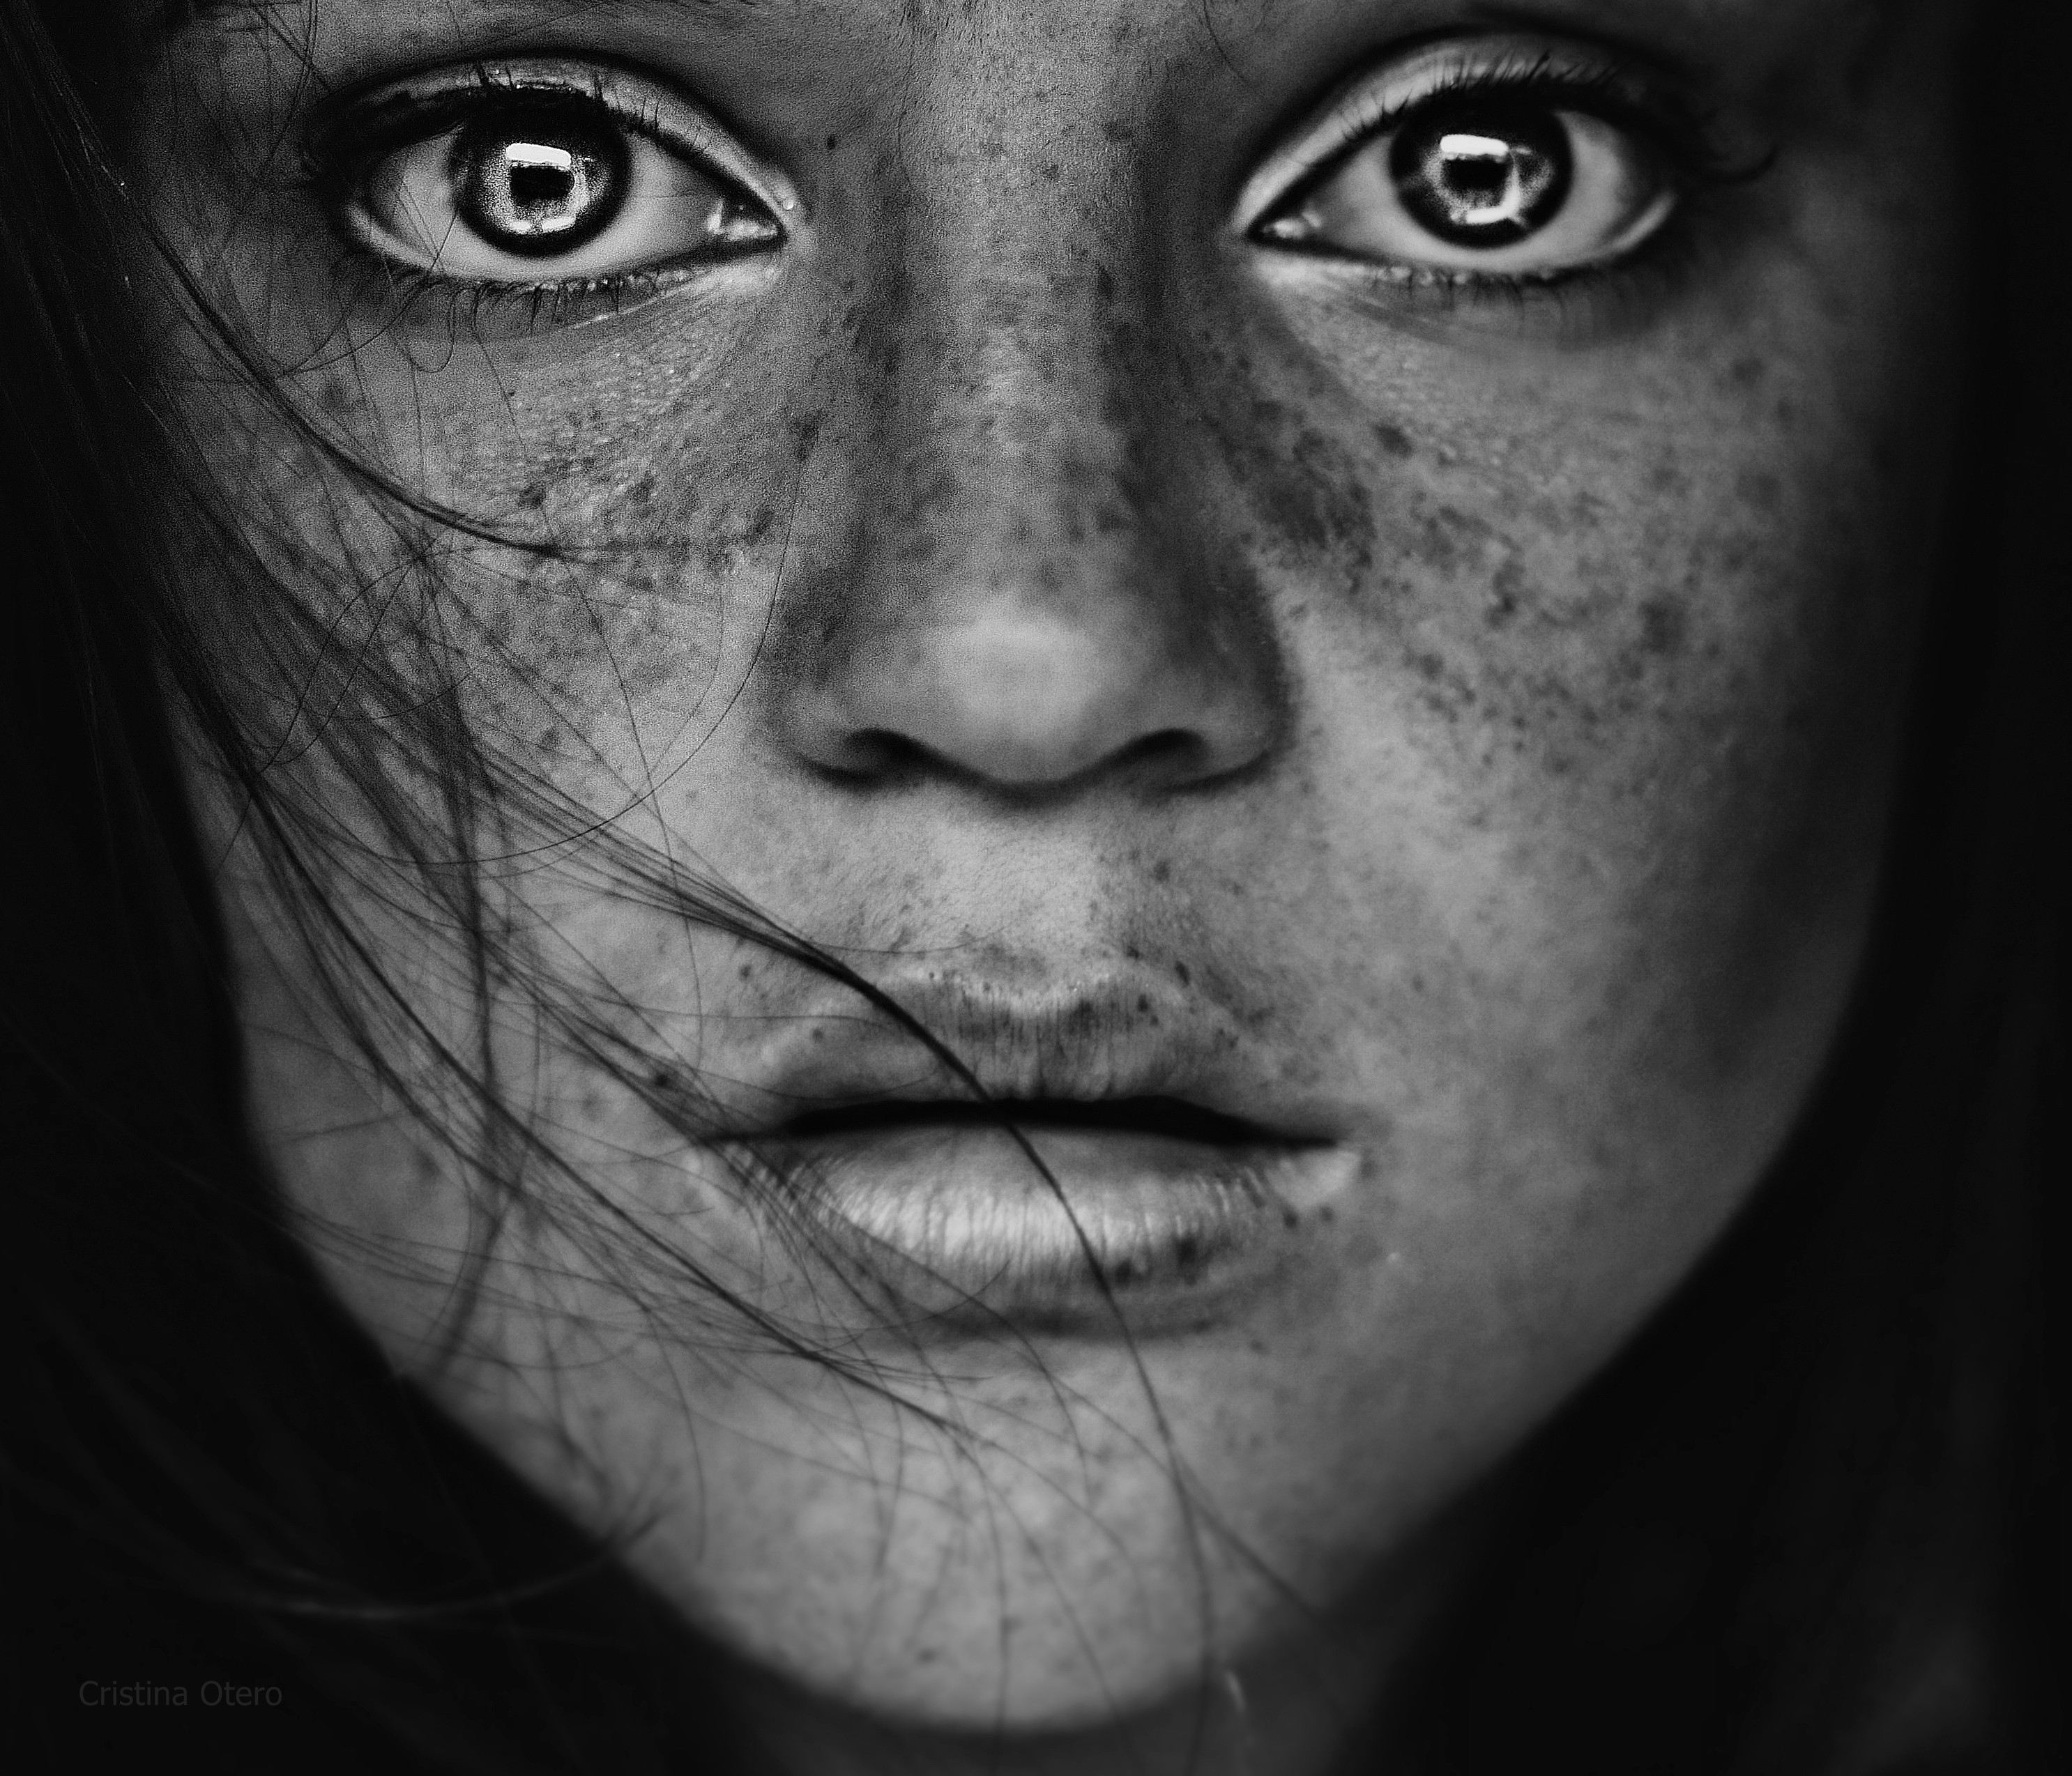 Black and white face with deep eyes